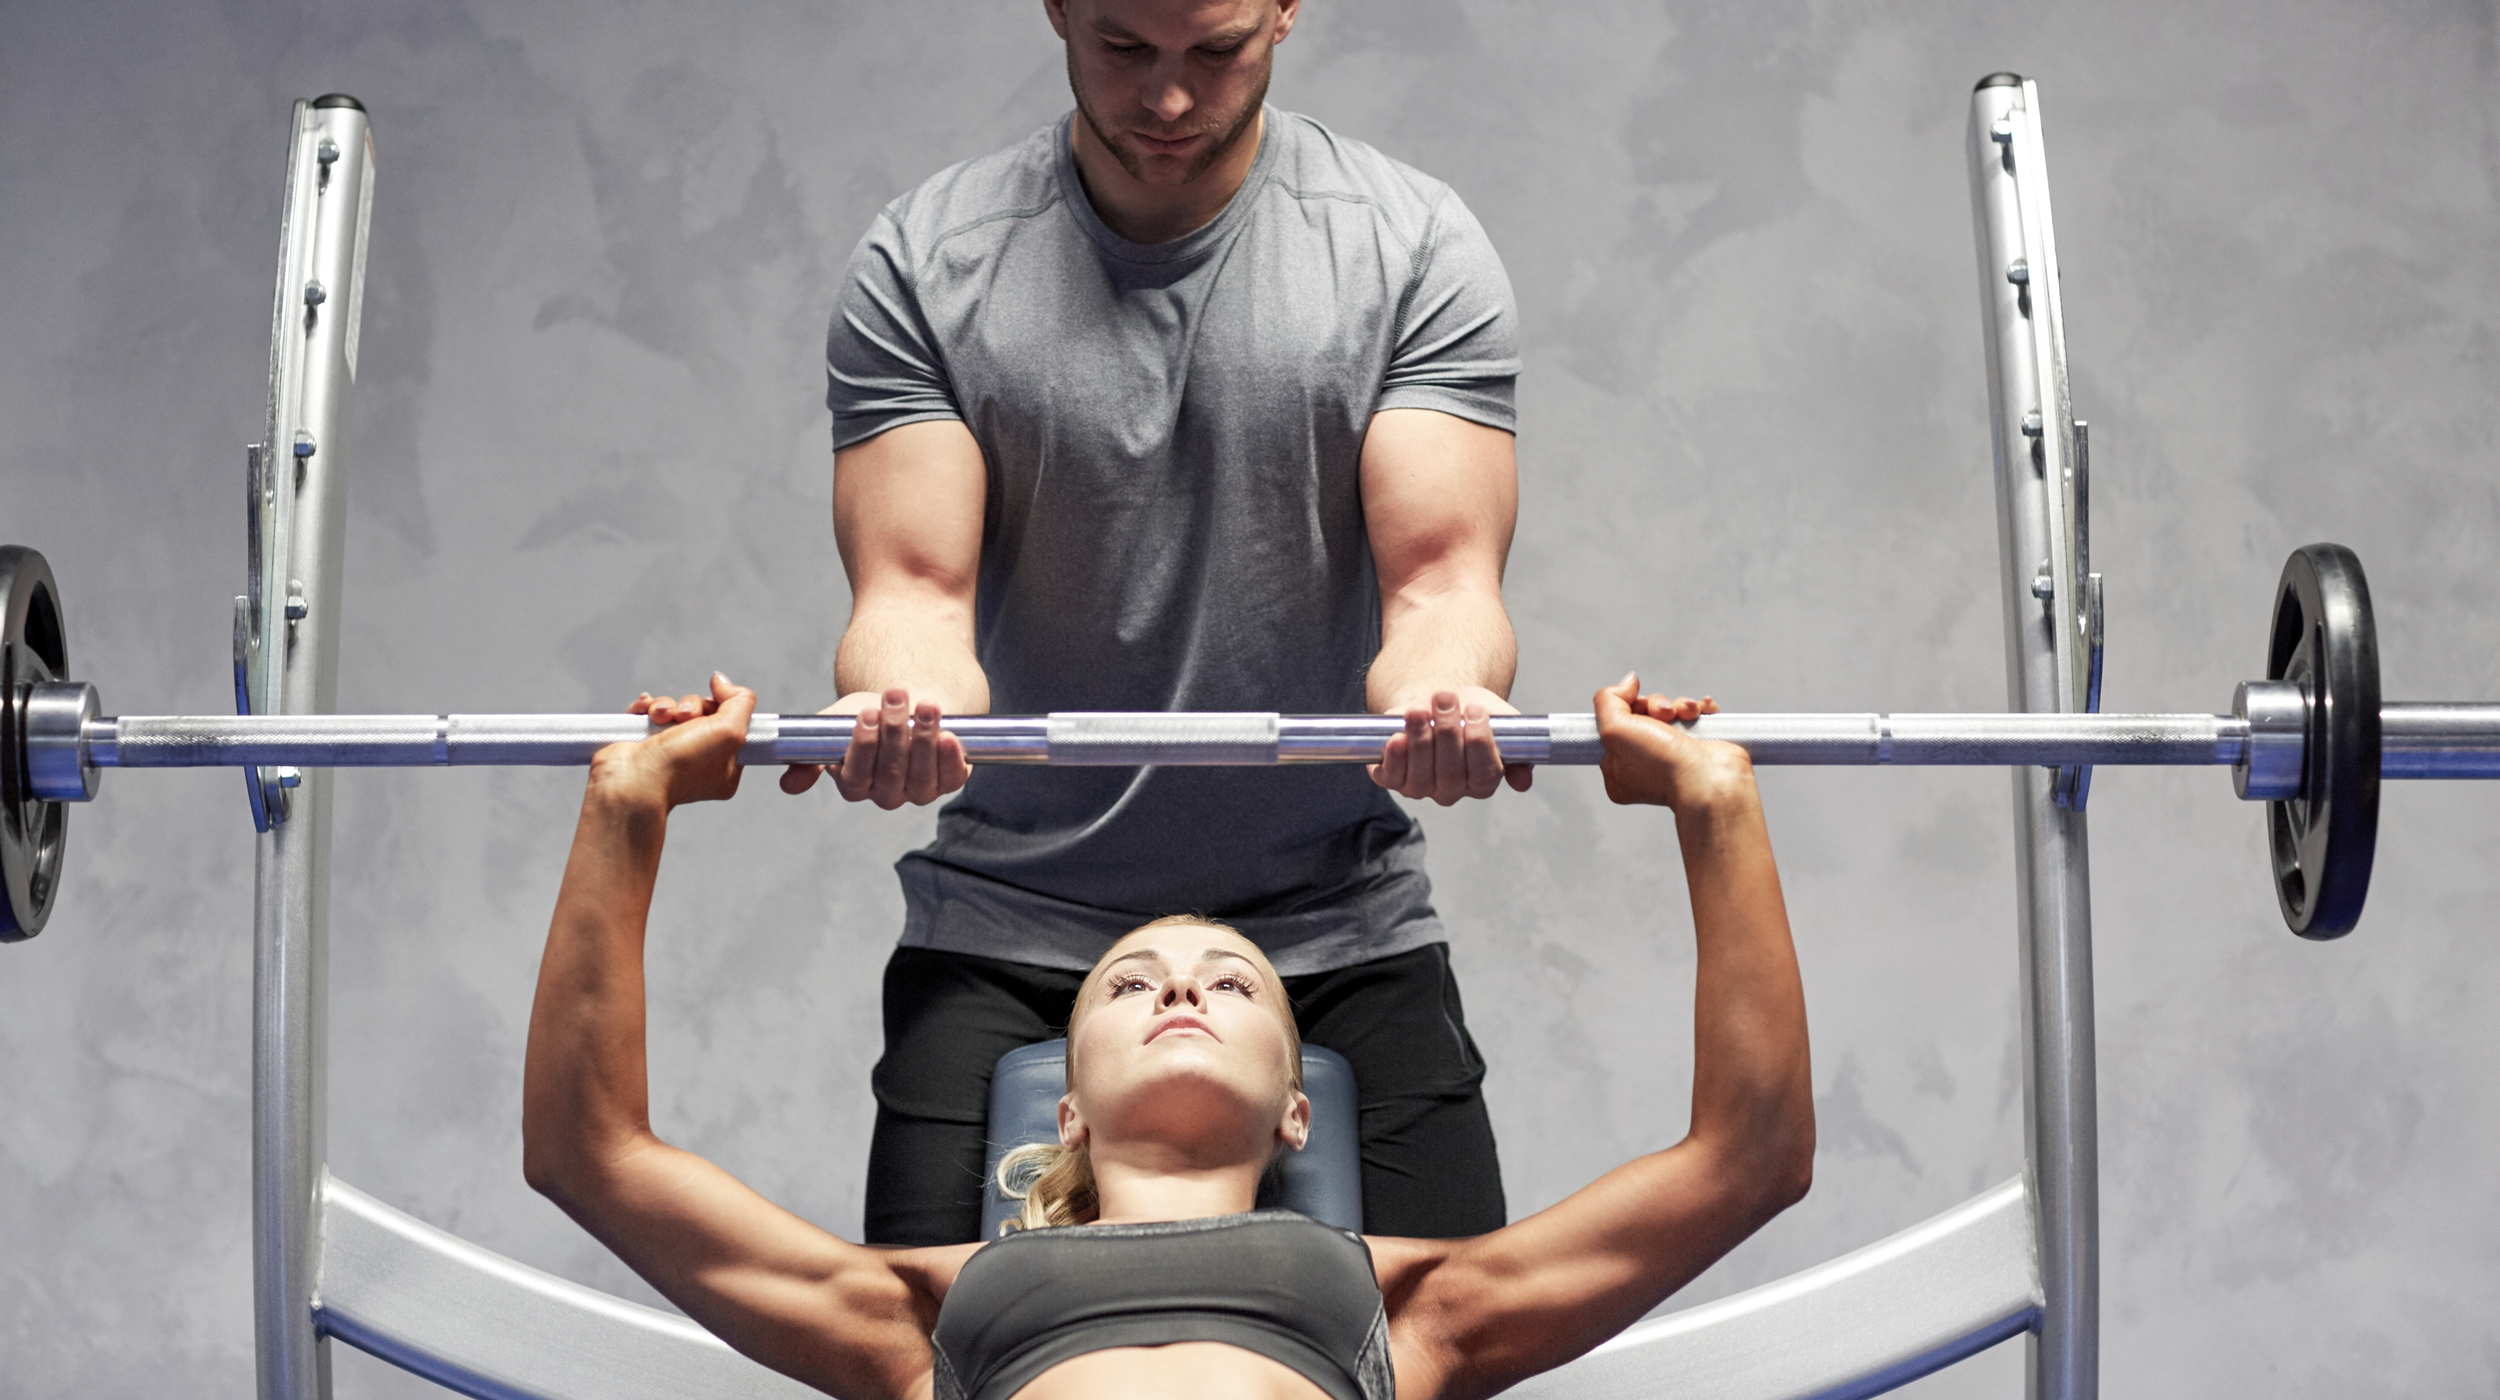 Is Personal Training a Good Career Choice Financially?